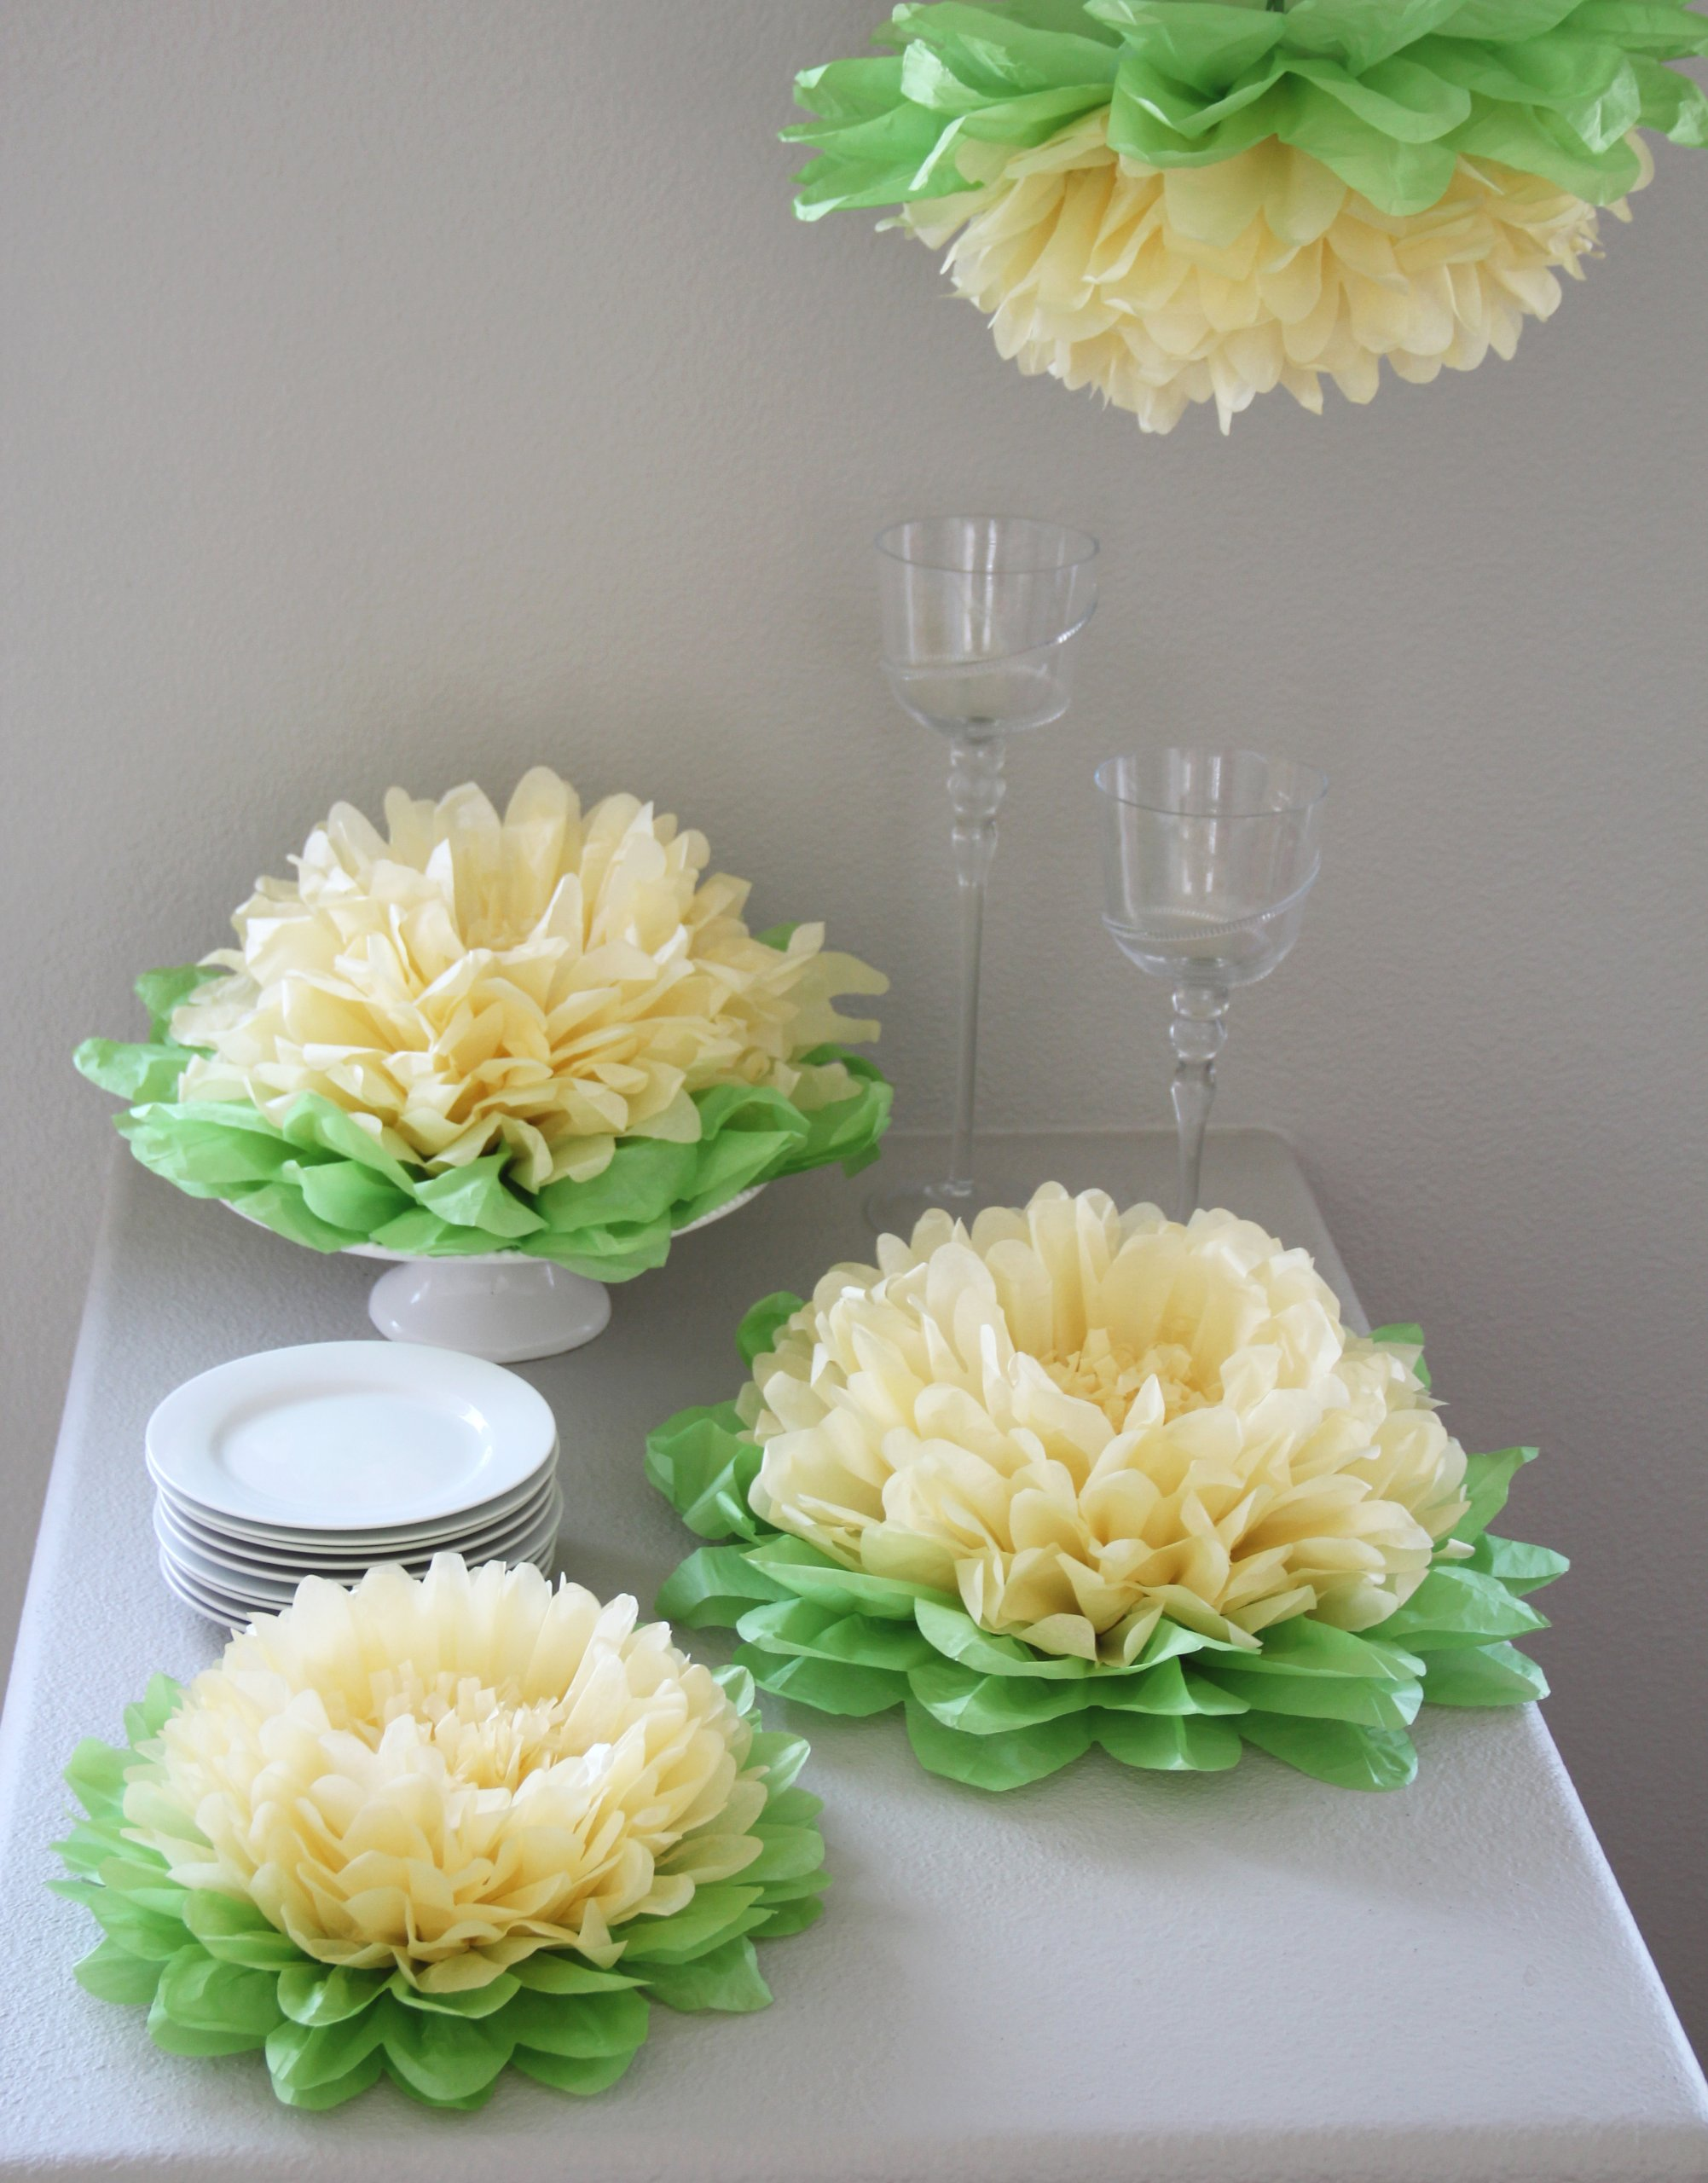 Butterfly Craze Girls Party Decorations - Set of 7 Yellow Tissue Paper Flowers